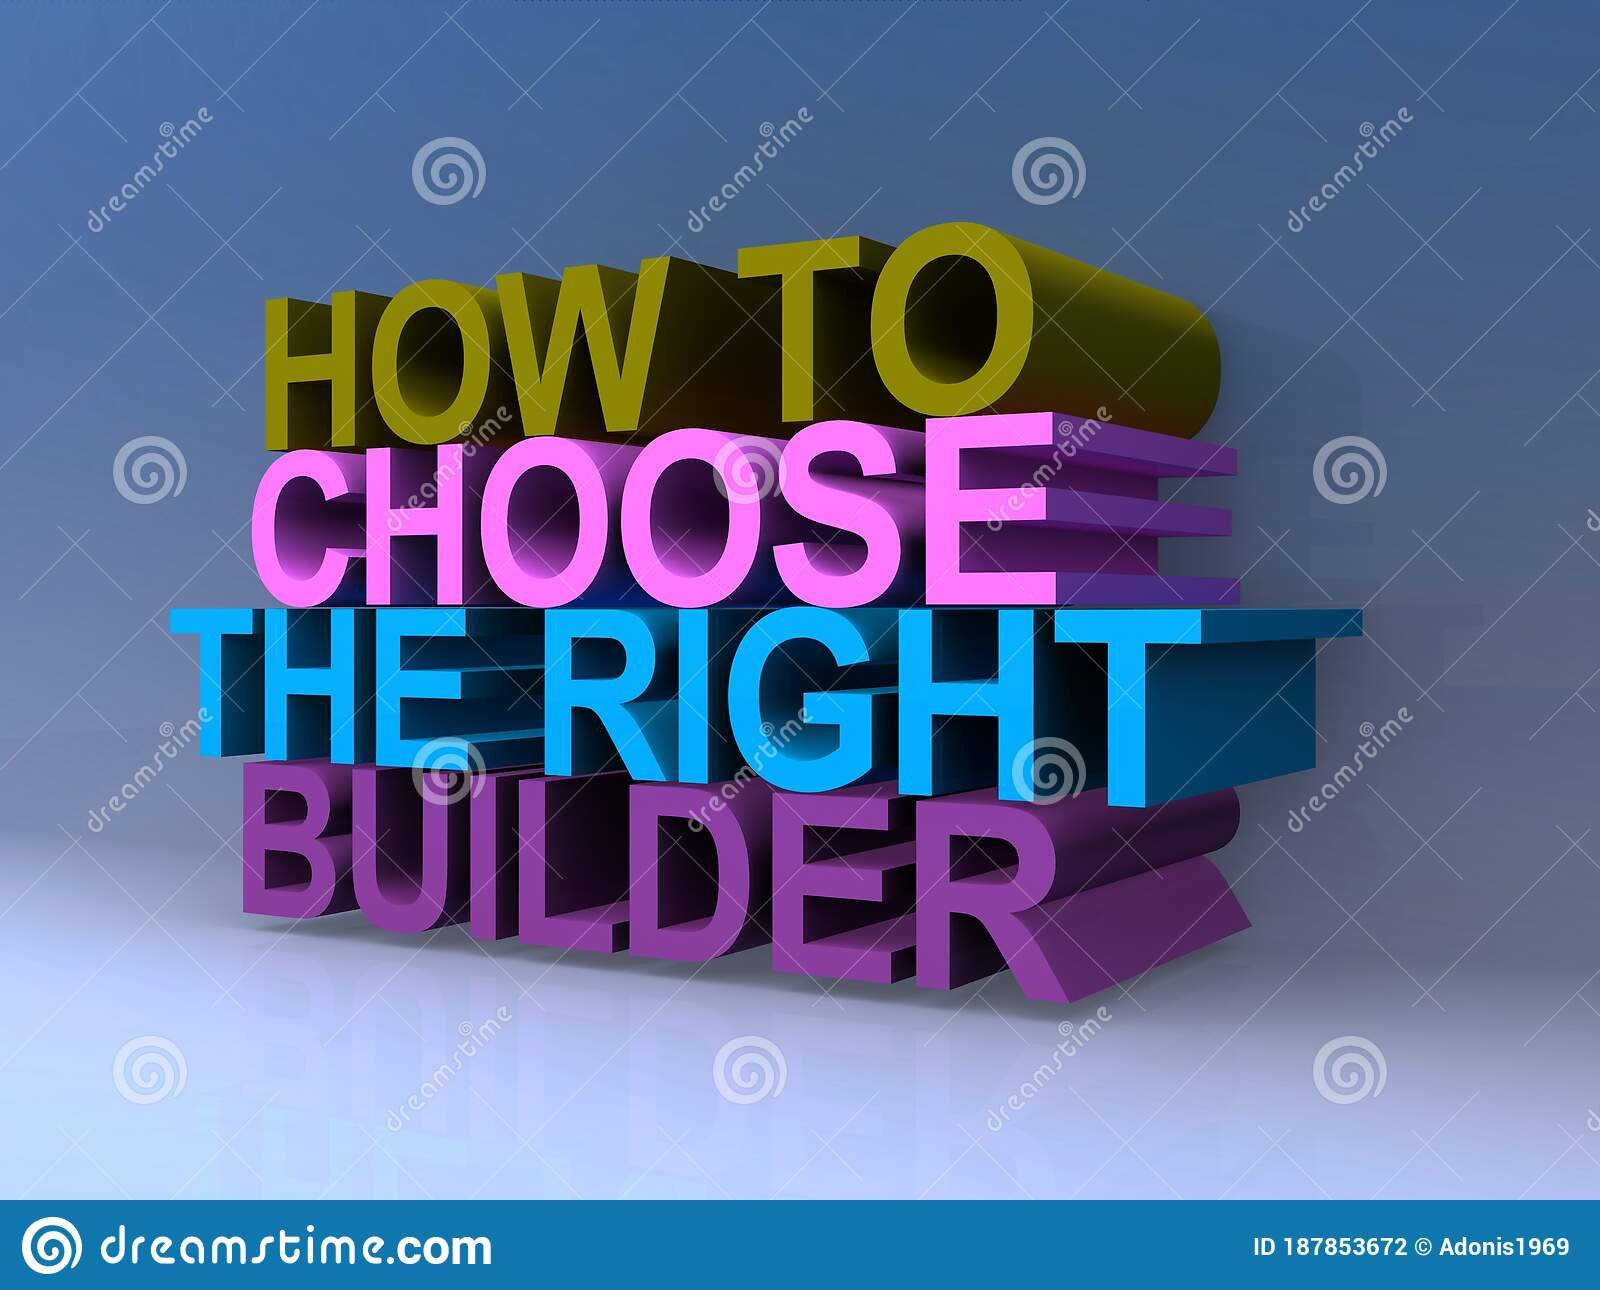 How To Choose The Right Builder Stock Illustration Illustration Of Hiring Thinker 187853672